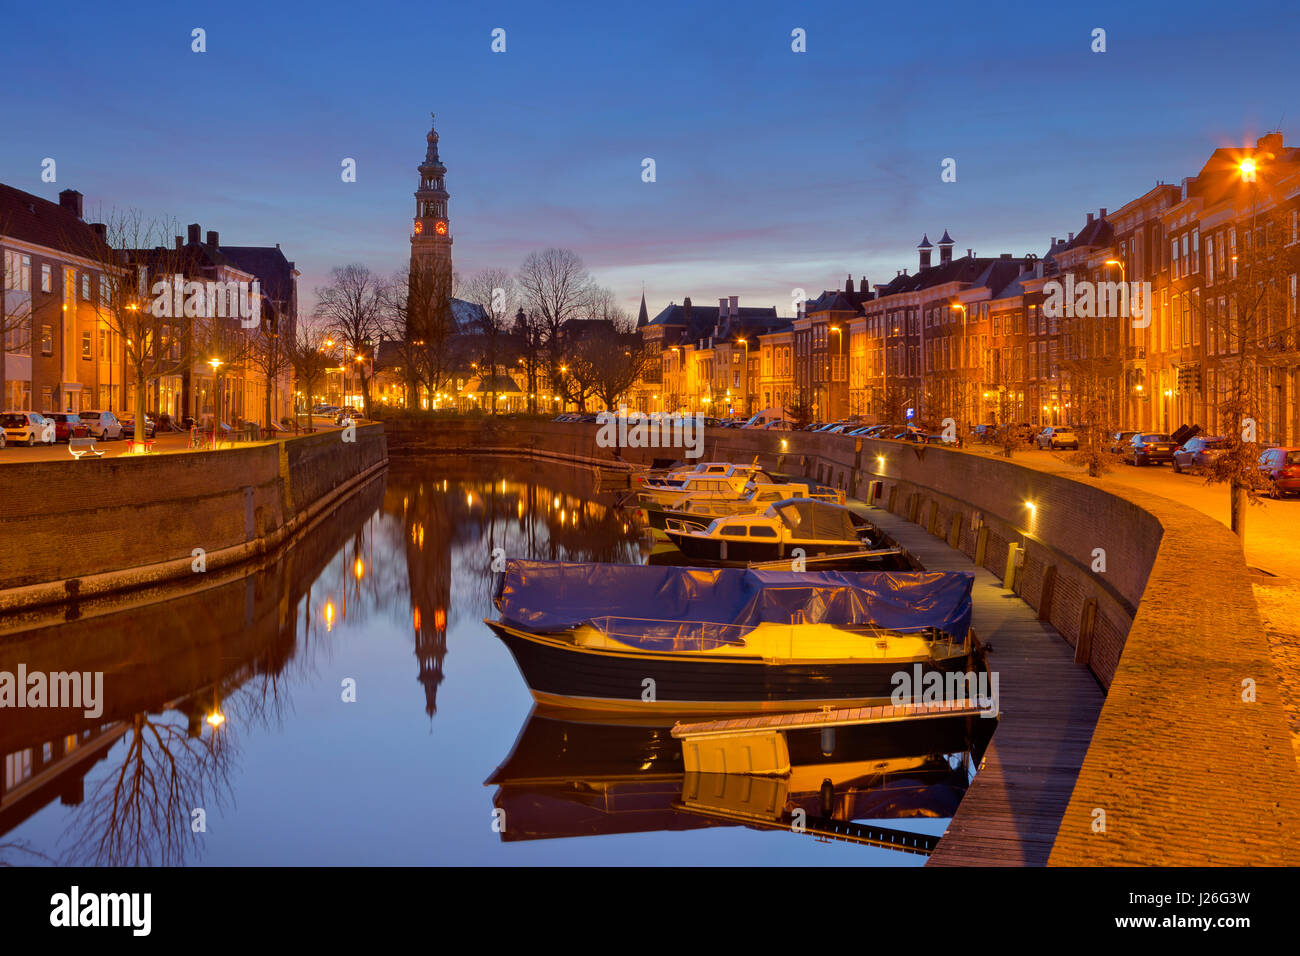 The city of Middelburg with the Lange Jan church tower in The Netherlands at night. Stock Photo